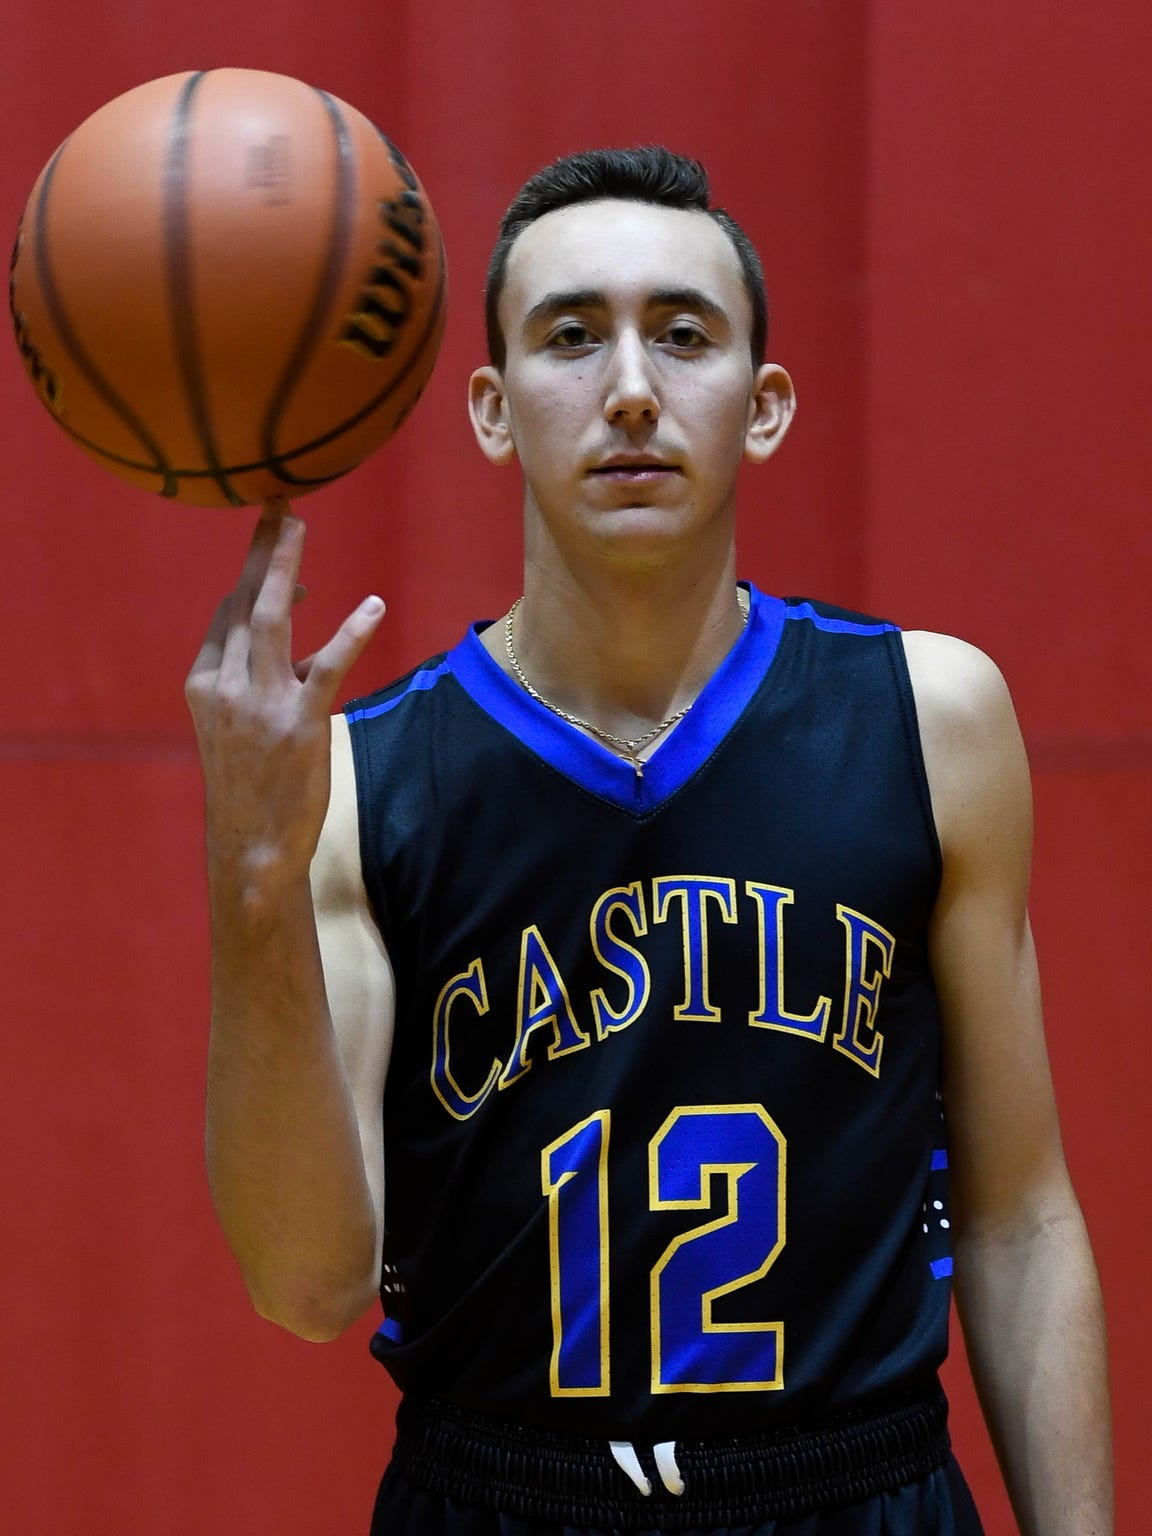 Castle Knights Alex Hemenway (12), Tuesday October